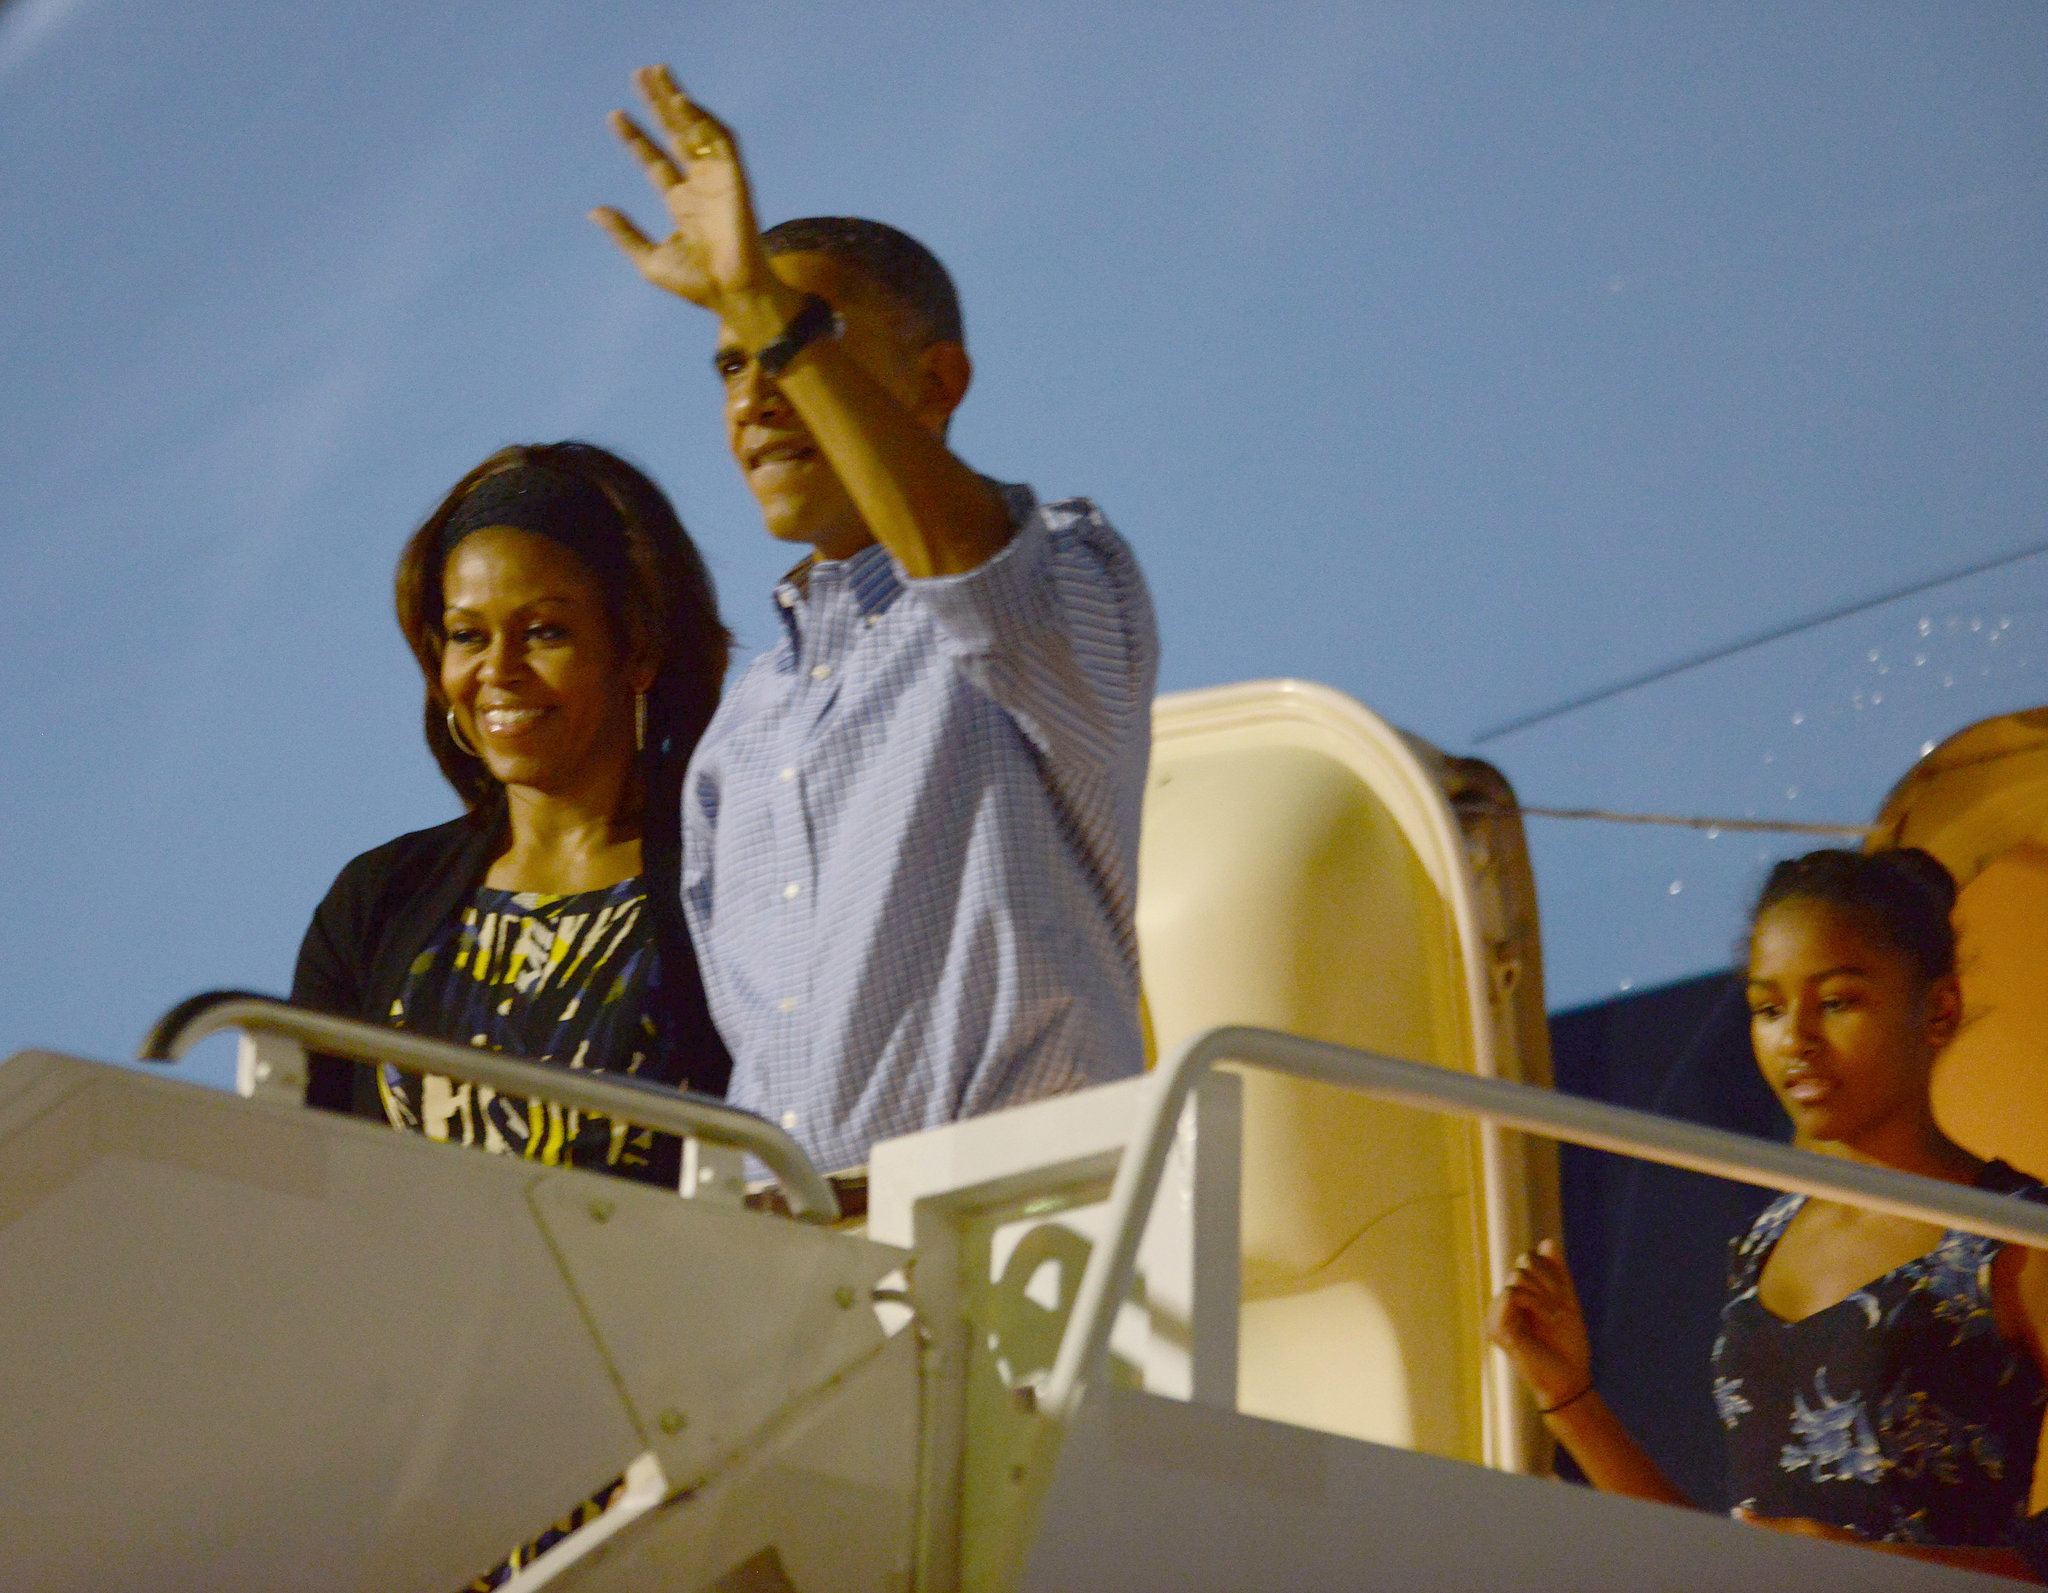 The Obamas Touched Down in Honolulu For a Mele Kalikimaka